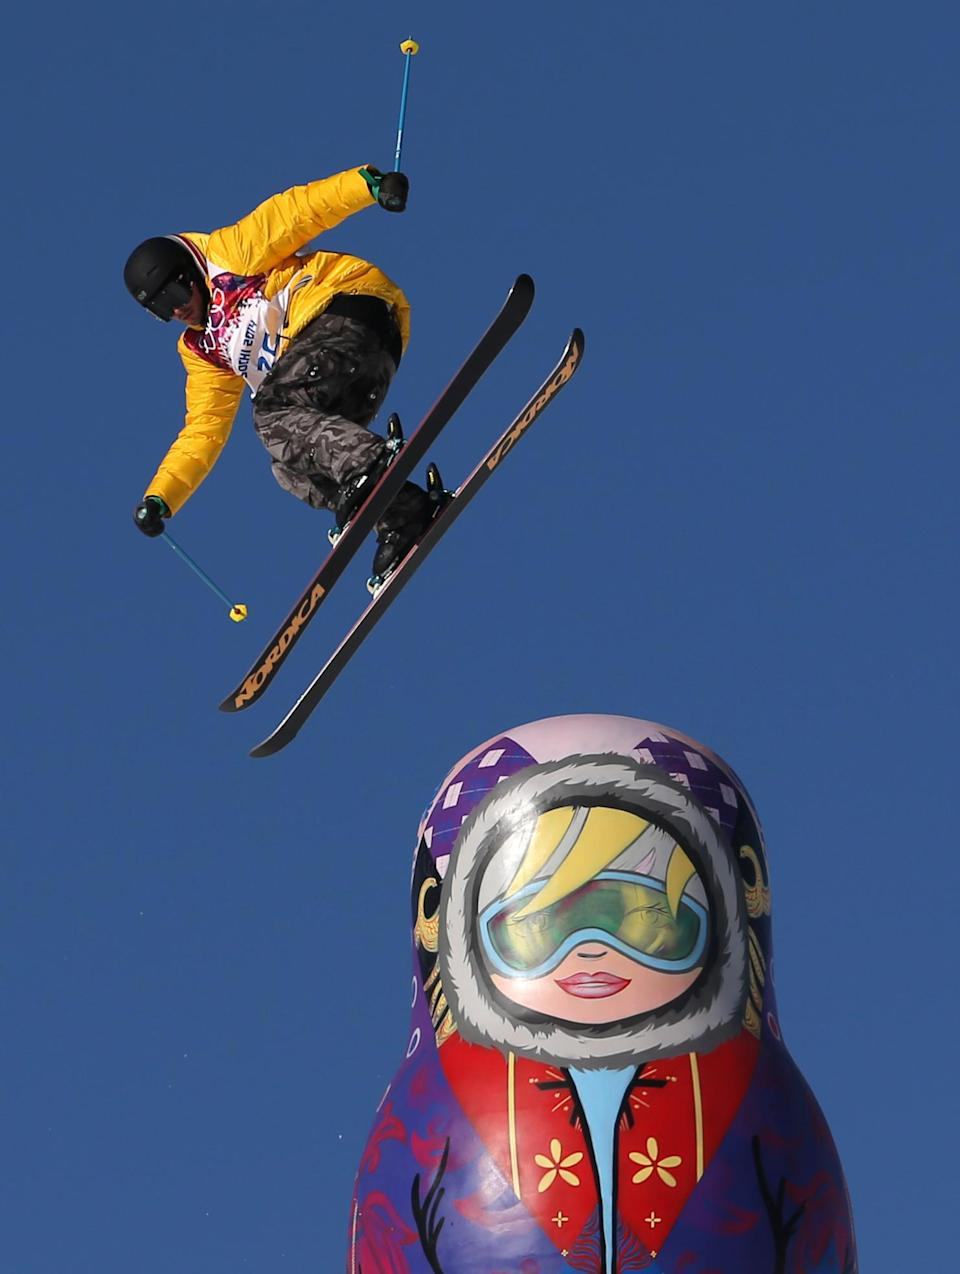 Germany's Benedikt Mayr competes in the men's ski slopestyle qualifying at the Rosa Khutor Extreme Park, at the 2014 Winter Olympics, Thursday, Feb. 13, 2014, in Krasnaya Polyana, Russia. (AP Photo/Sergei Grits)